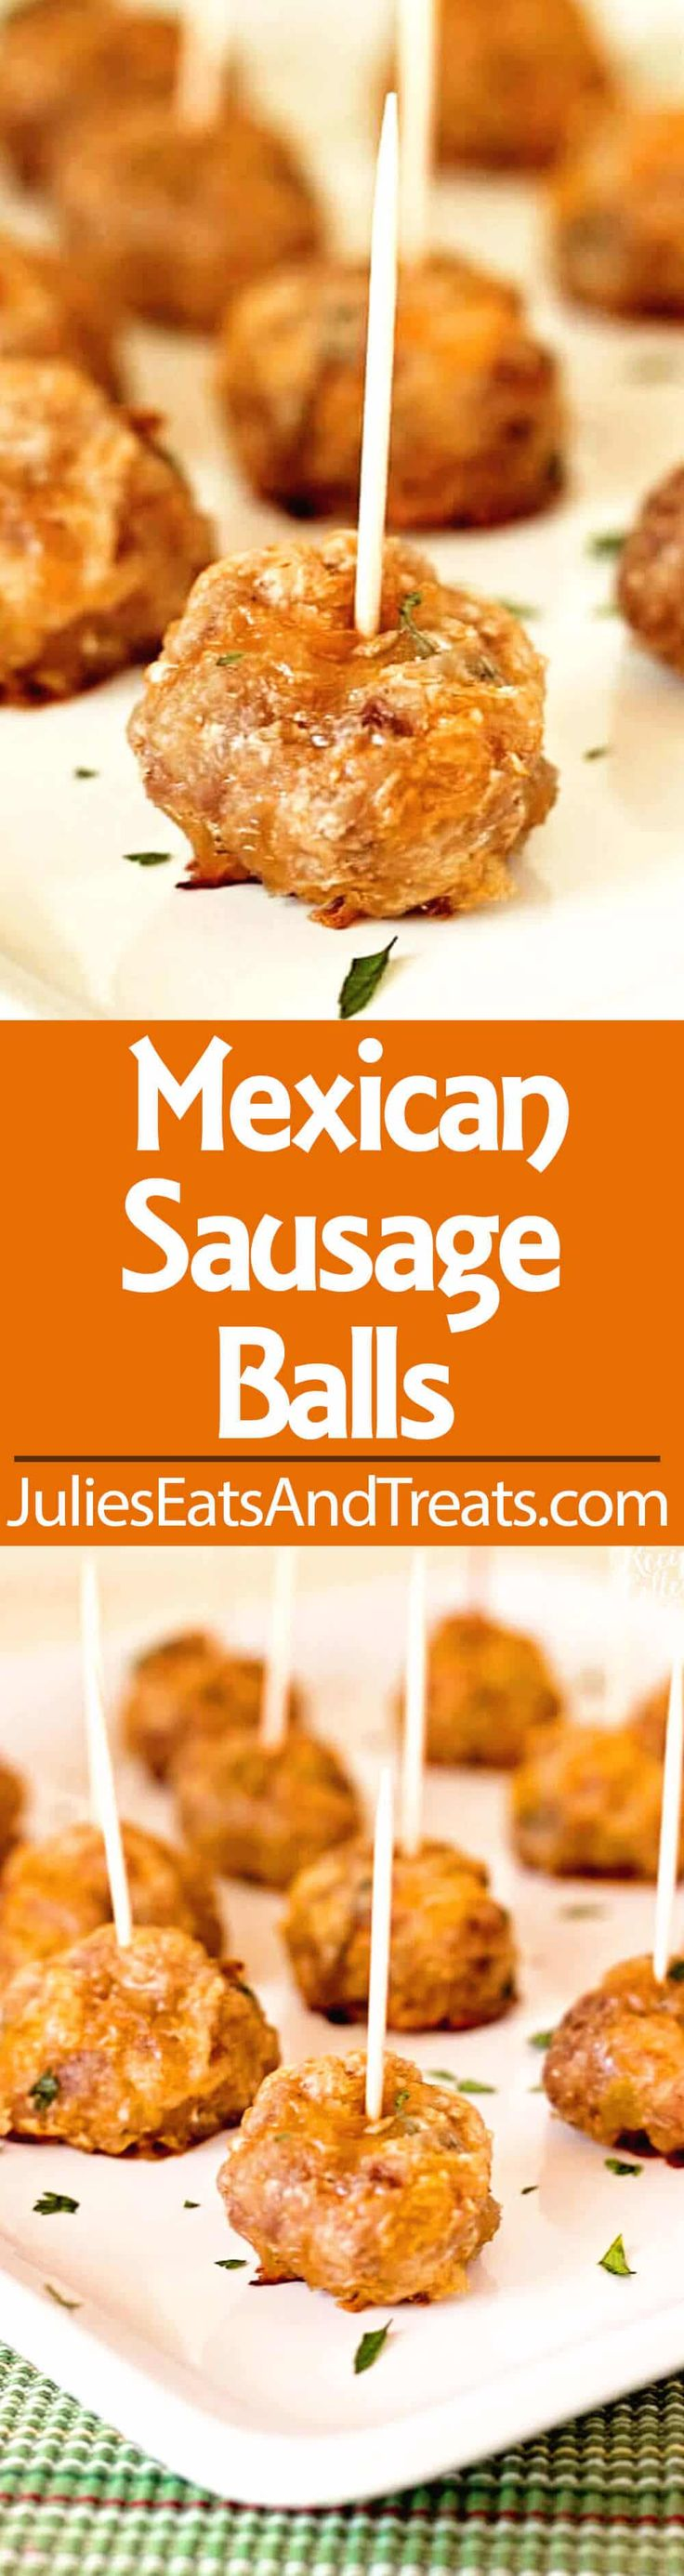 Mexican Sausage Balls - A quick and easy appetizer made with breakfast sausage you can make ahead of time and bake when you're ready! ~ https://www.julieseatsandtreats.com